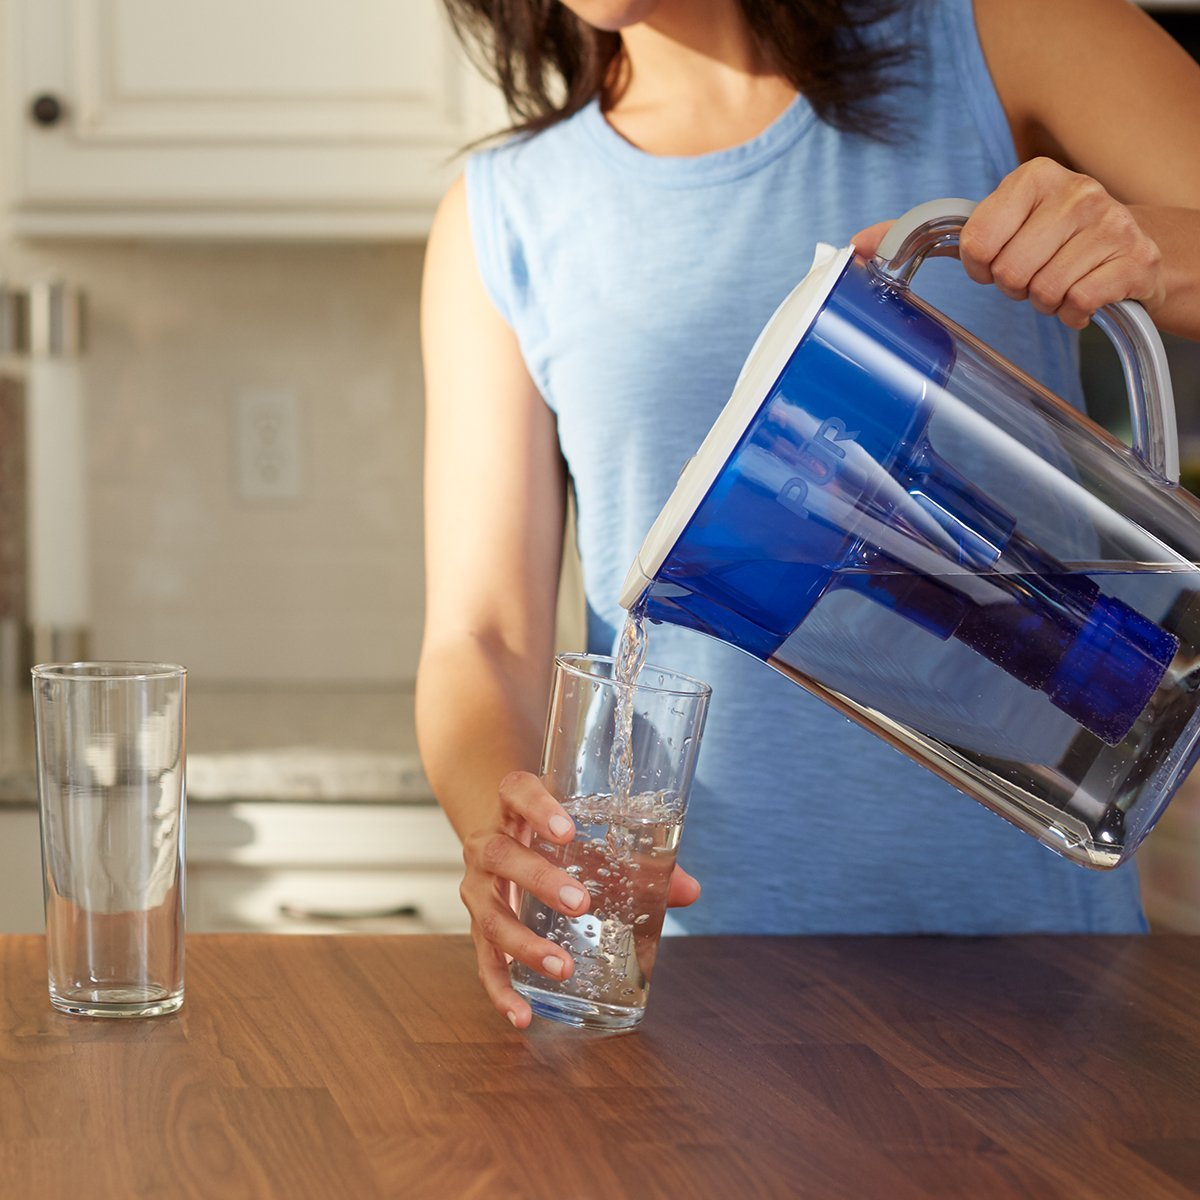 Do You Really Need Home Water Filters at home?